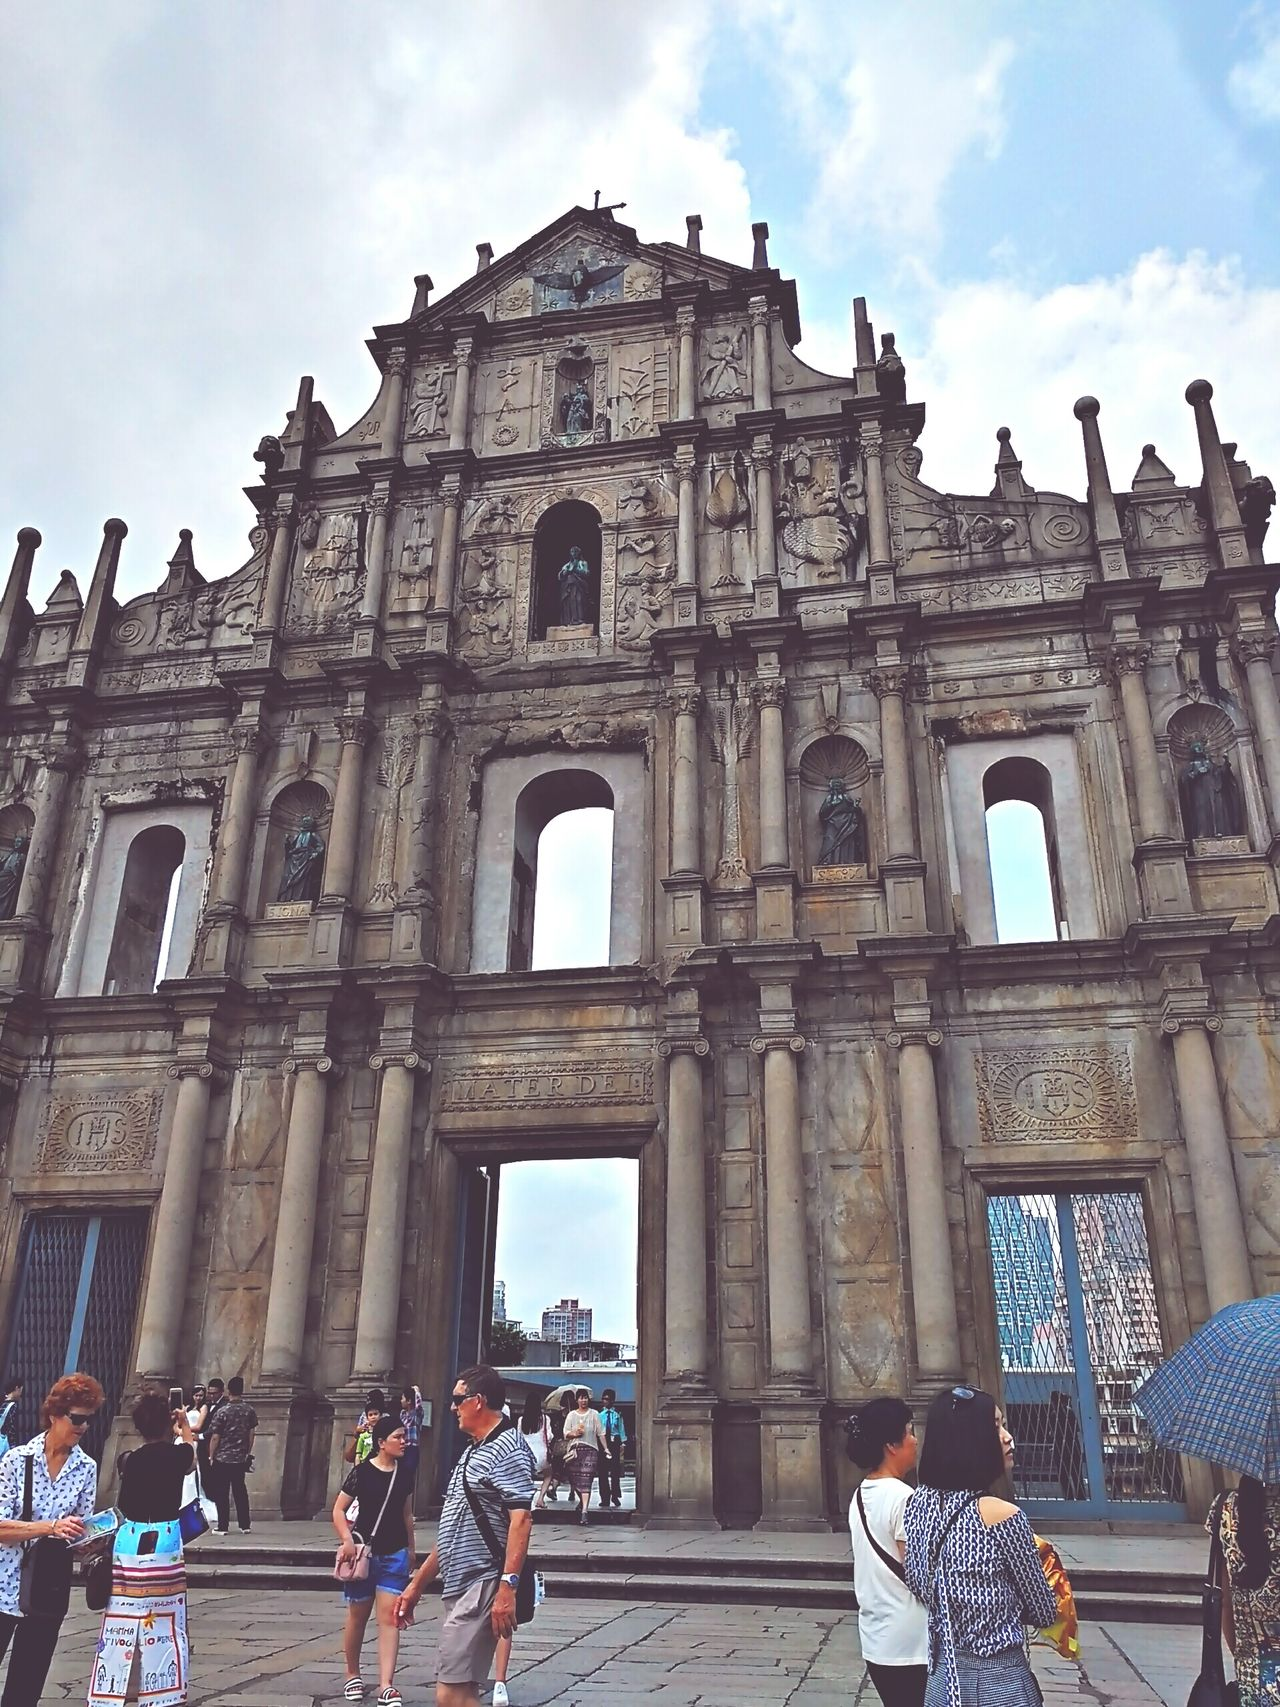 Taking Photos at Macau. Great weather and view.